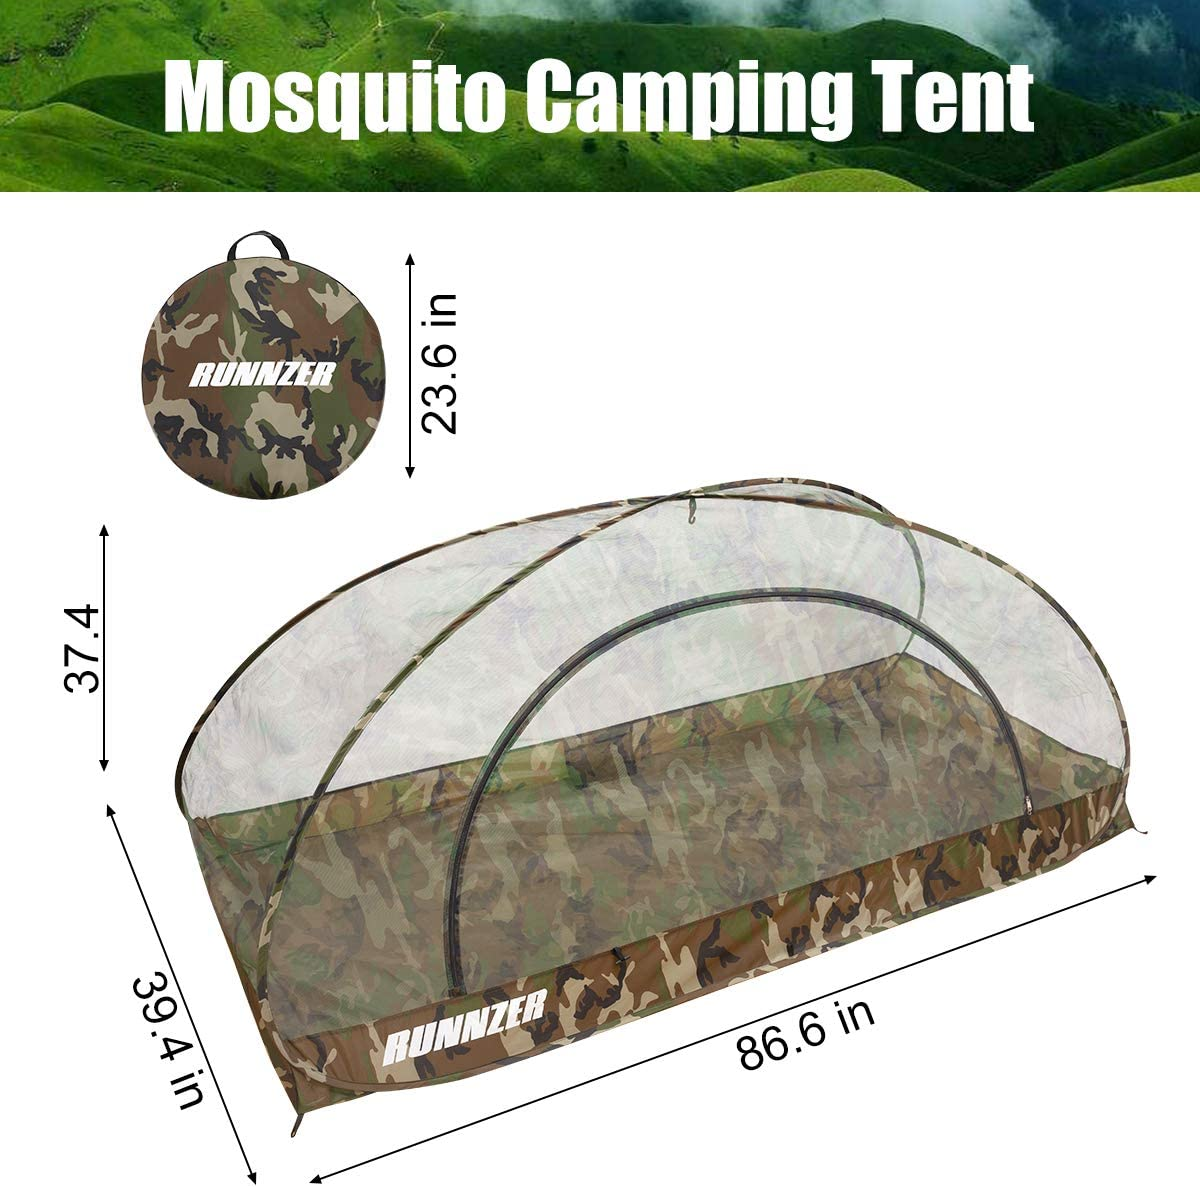 RUNNZER Mosquito Tent for Camping Outdoor Travling Camping for Backyard, Self Standing Auto- Expanding